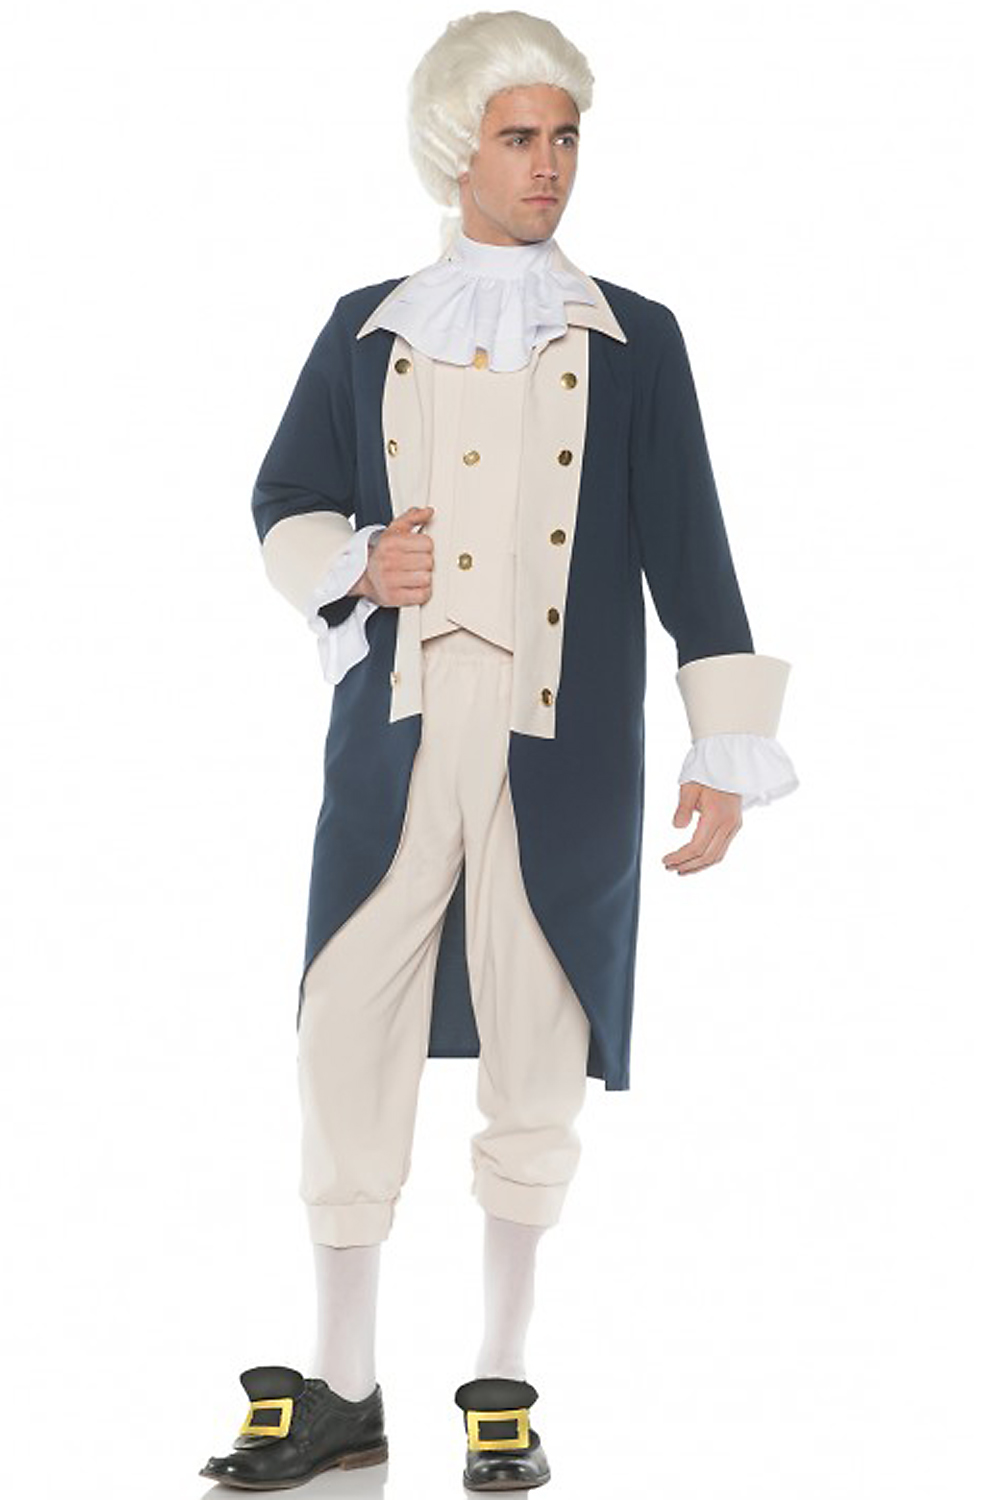 Famous people costumes celebrity diy dress up ideas colonial founding father adult costume solutioingenieria Image collections